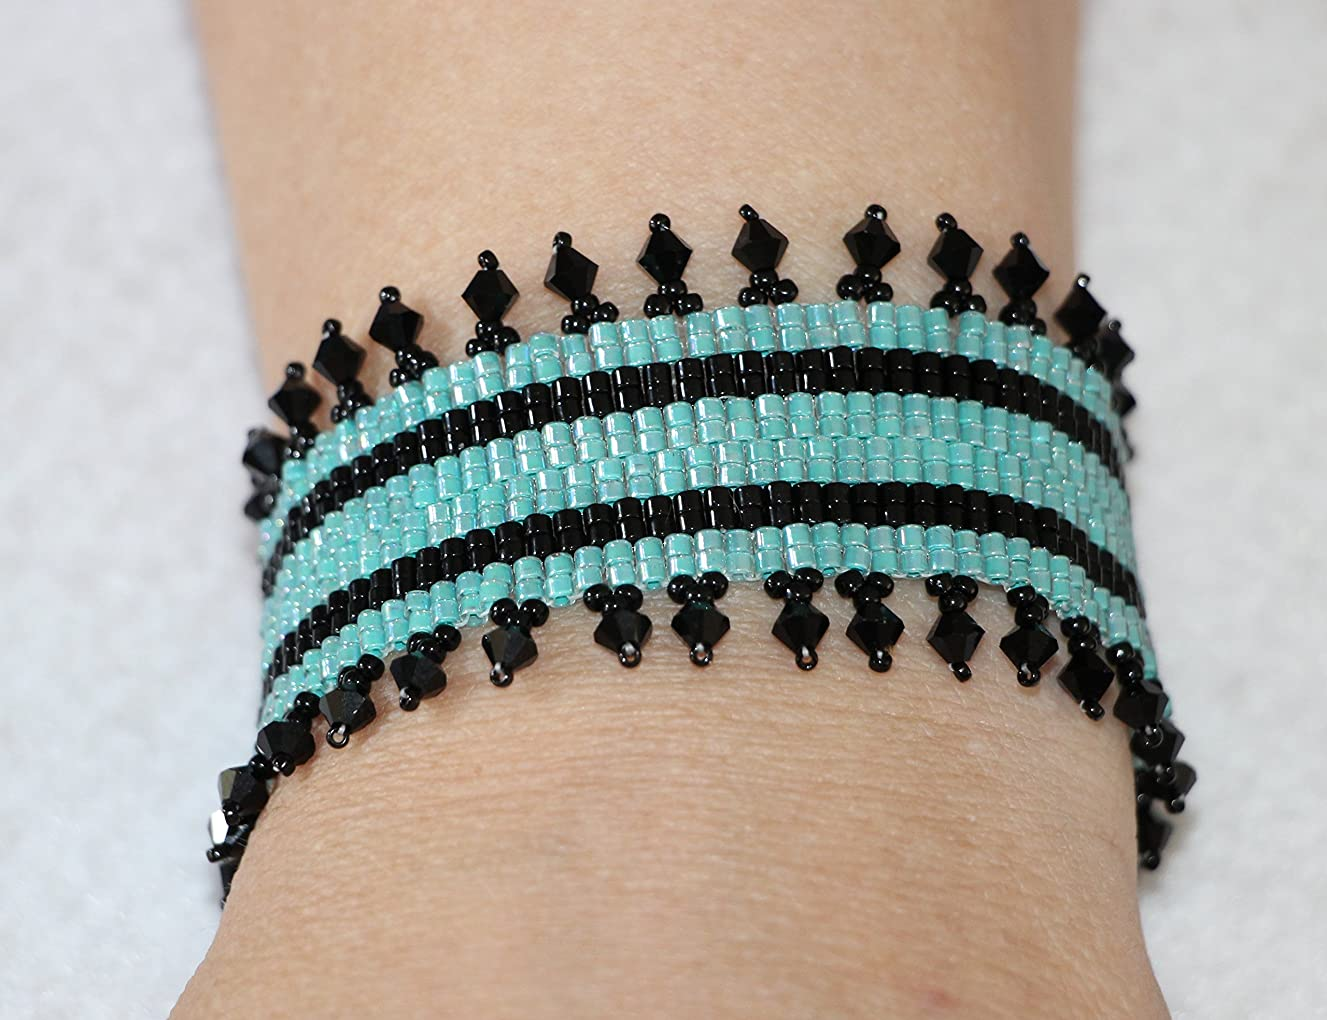 1132. Turquoise and black bead woven cuff bracelet with a toggle clasp.